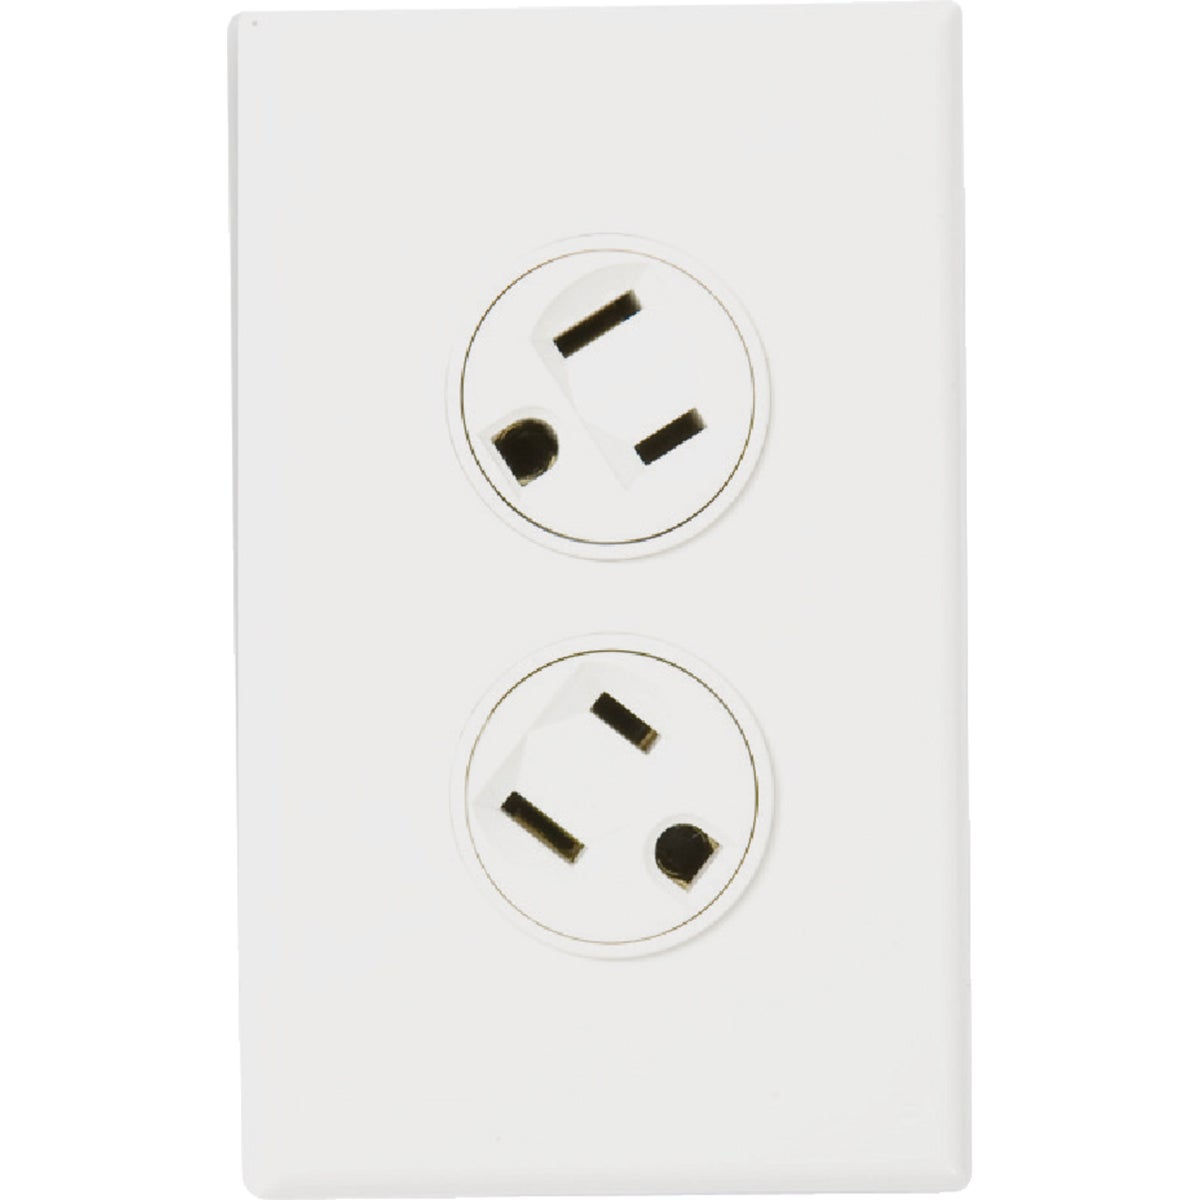 ALM ROTATE DUPLEX OUTLET - 36012-A by 360 Electrical